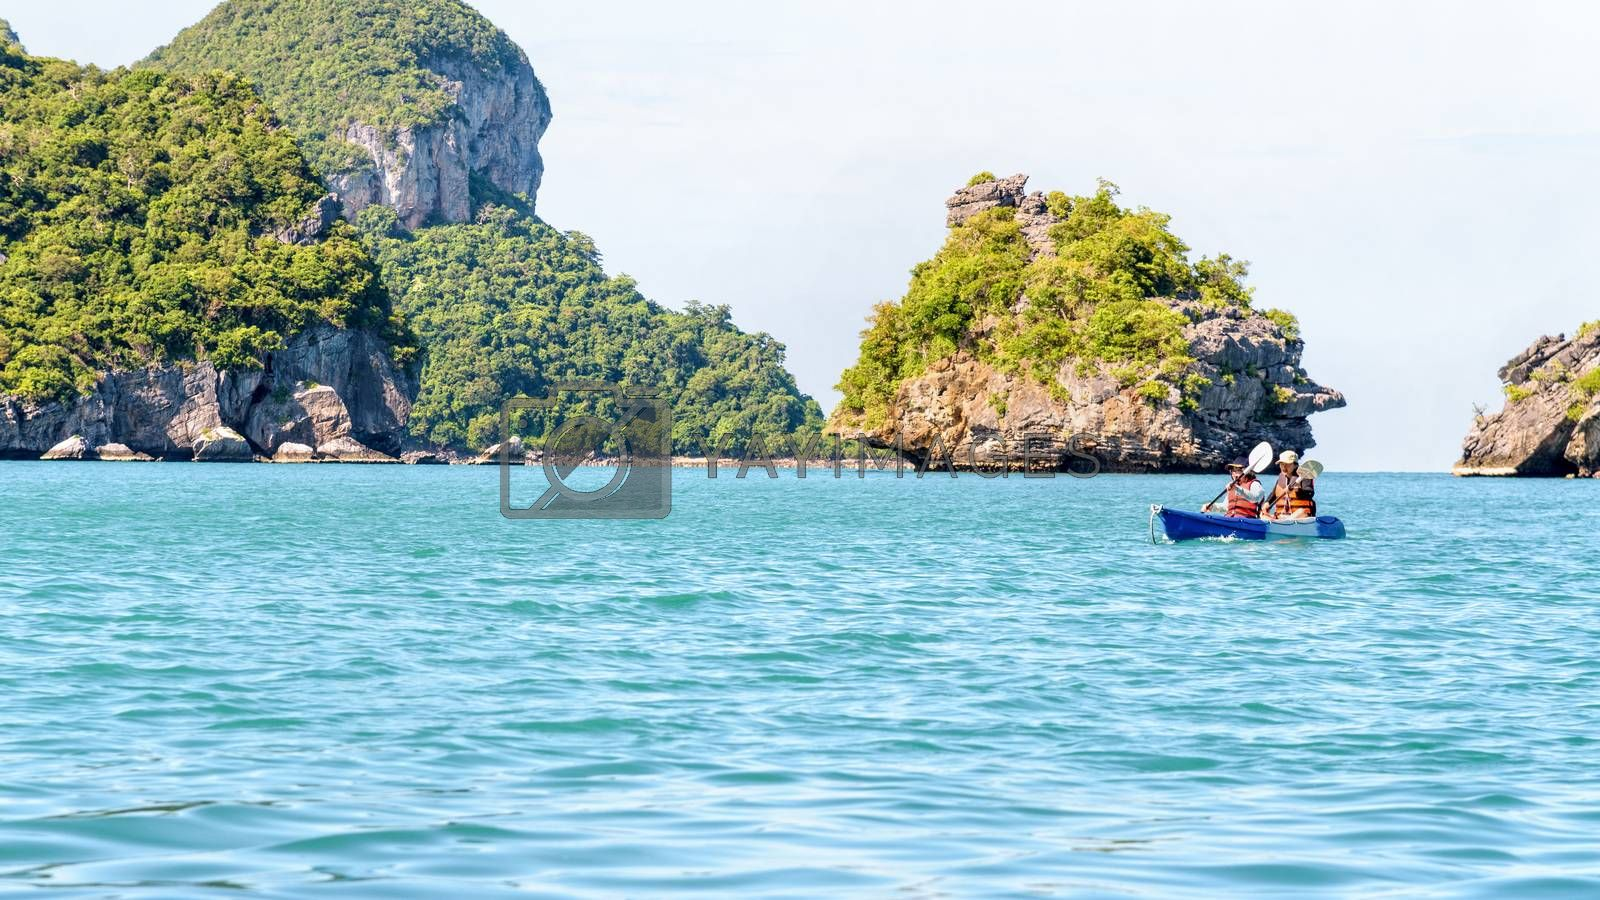 Two women are mother and daughter. Travel by boat with kayak view the beautiful natural landscape of the blue sea and island at summer, Mu Ko Ang Thong National Park, Surat Thani, Thailand, 16:9 widescreen